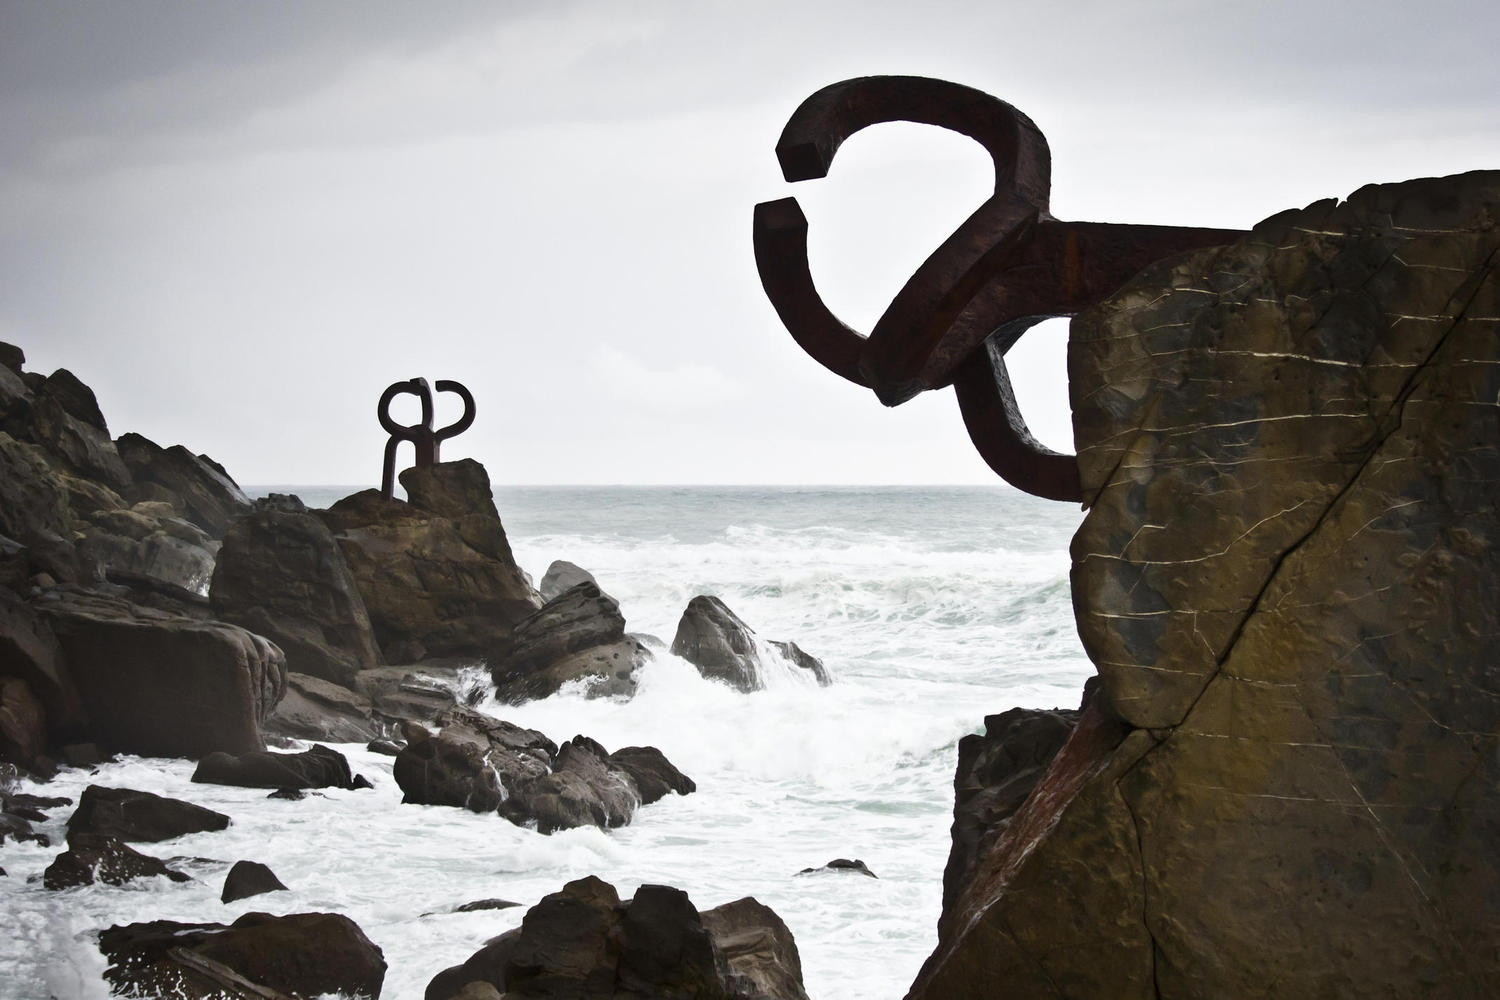 The Wind comb, sculpture in San Sebastian by the famous basque artist Chillida